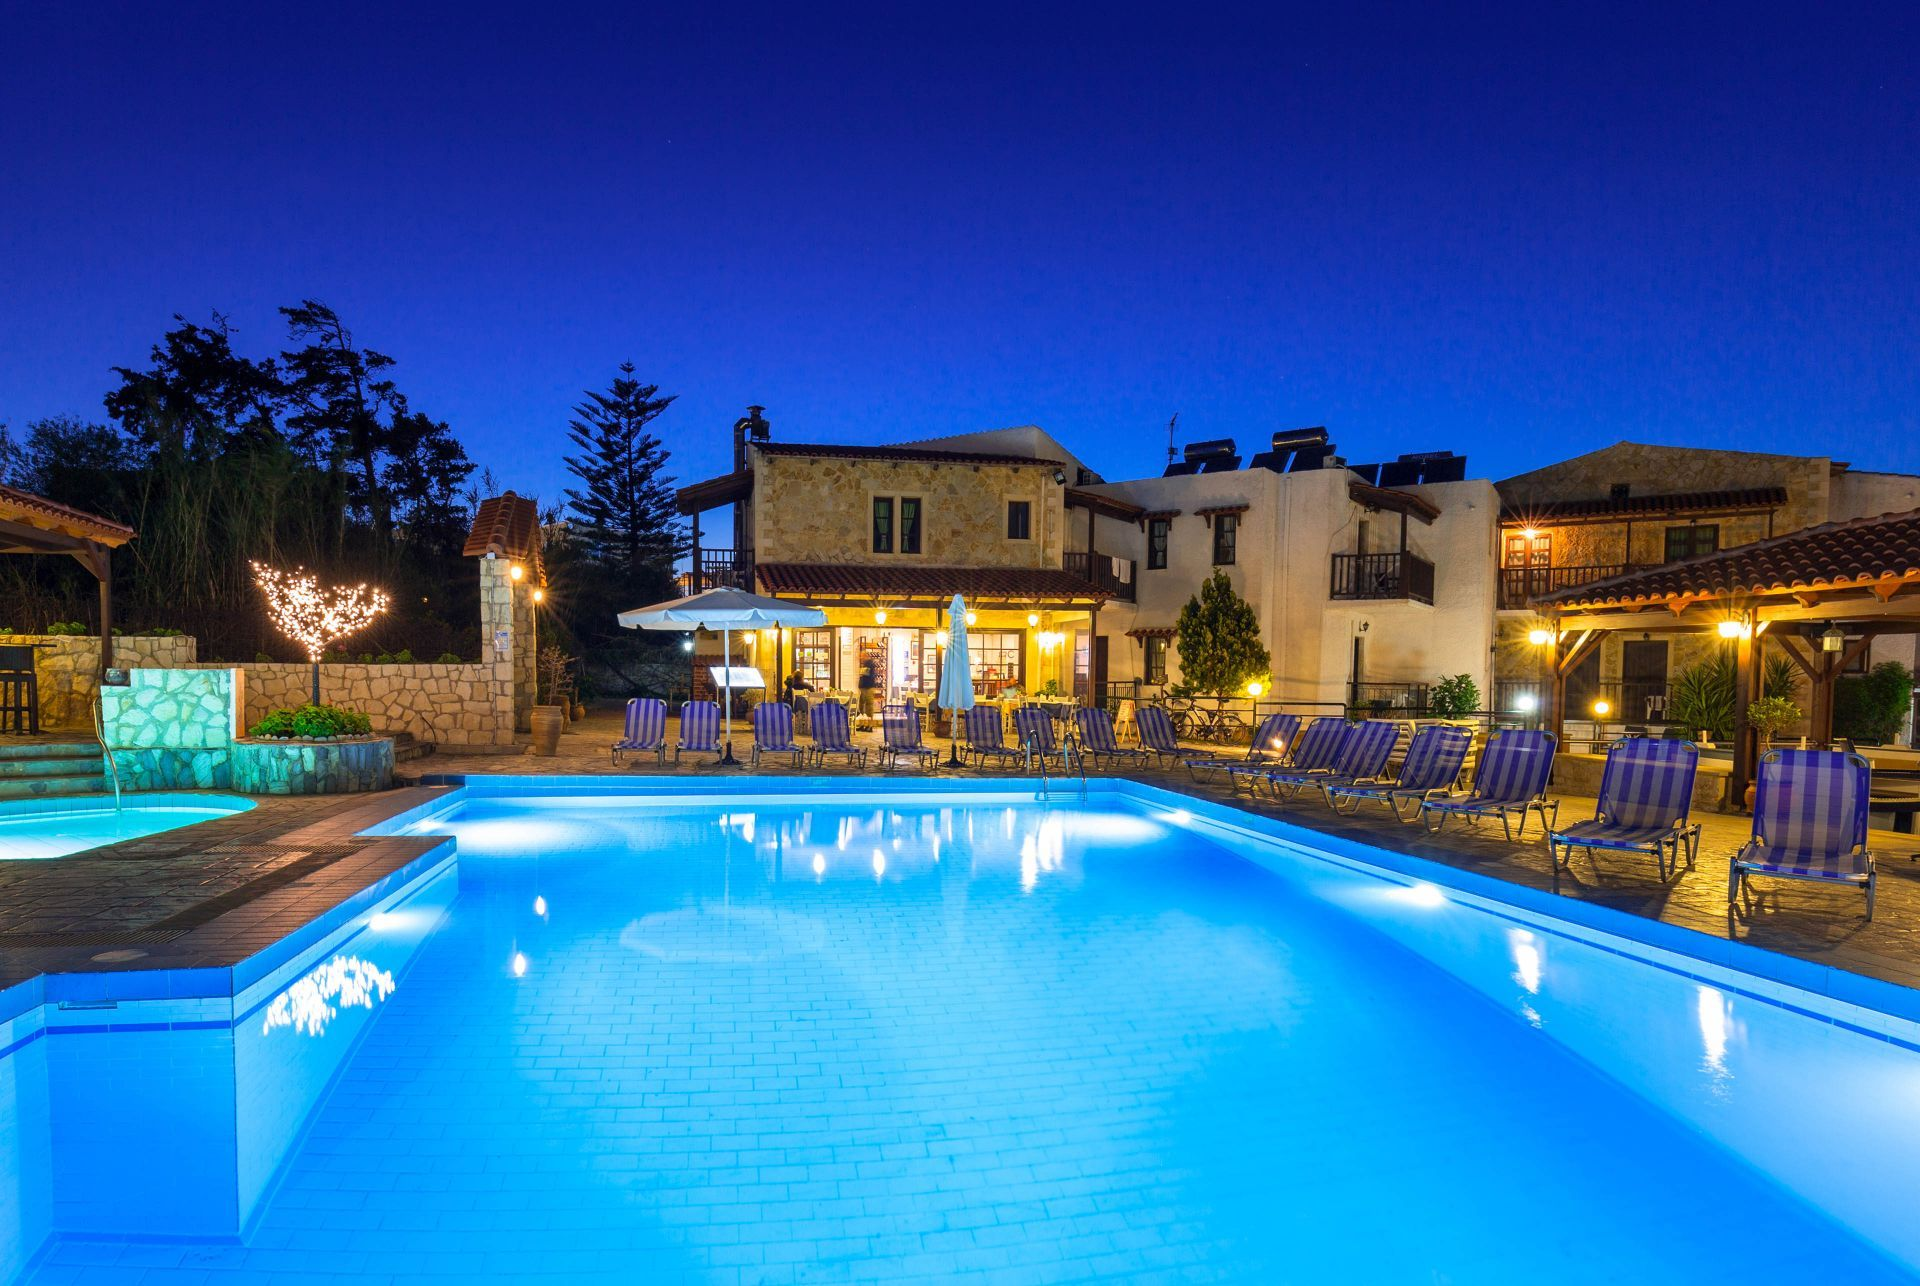 Accommodation and hotels in Chania